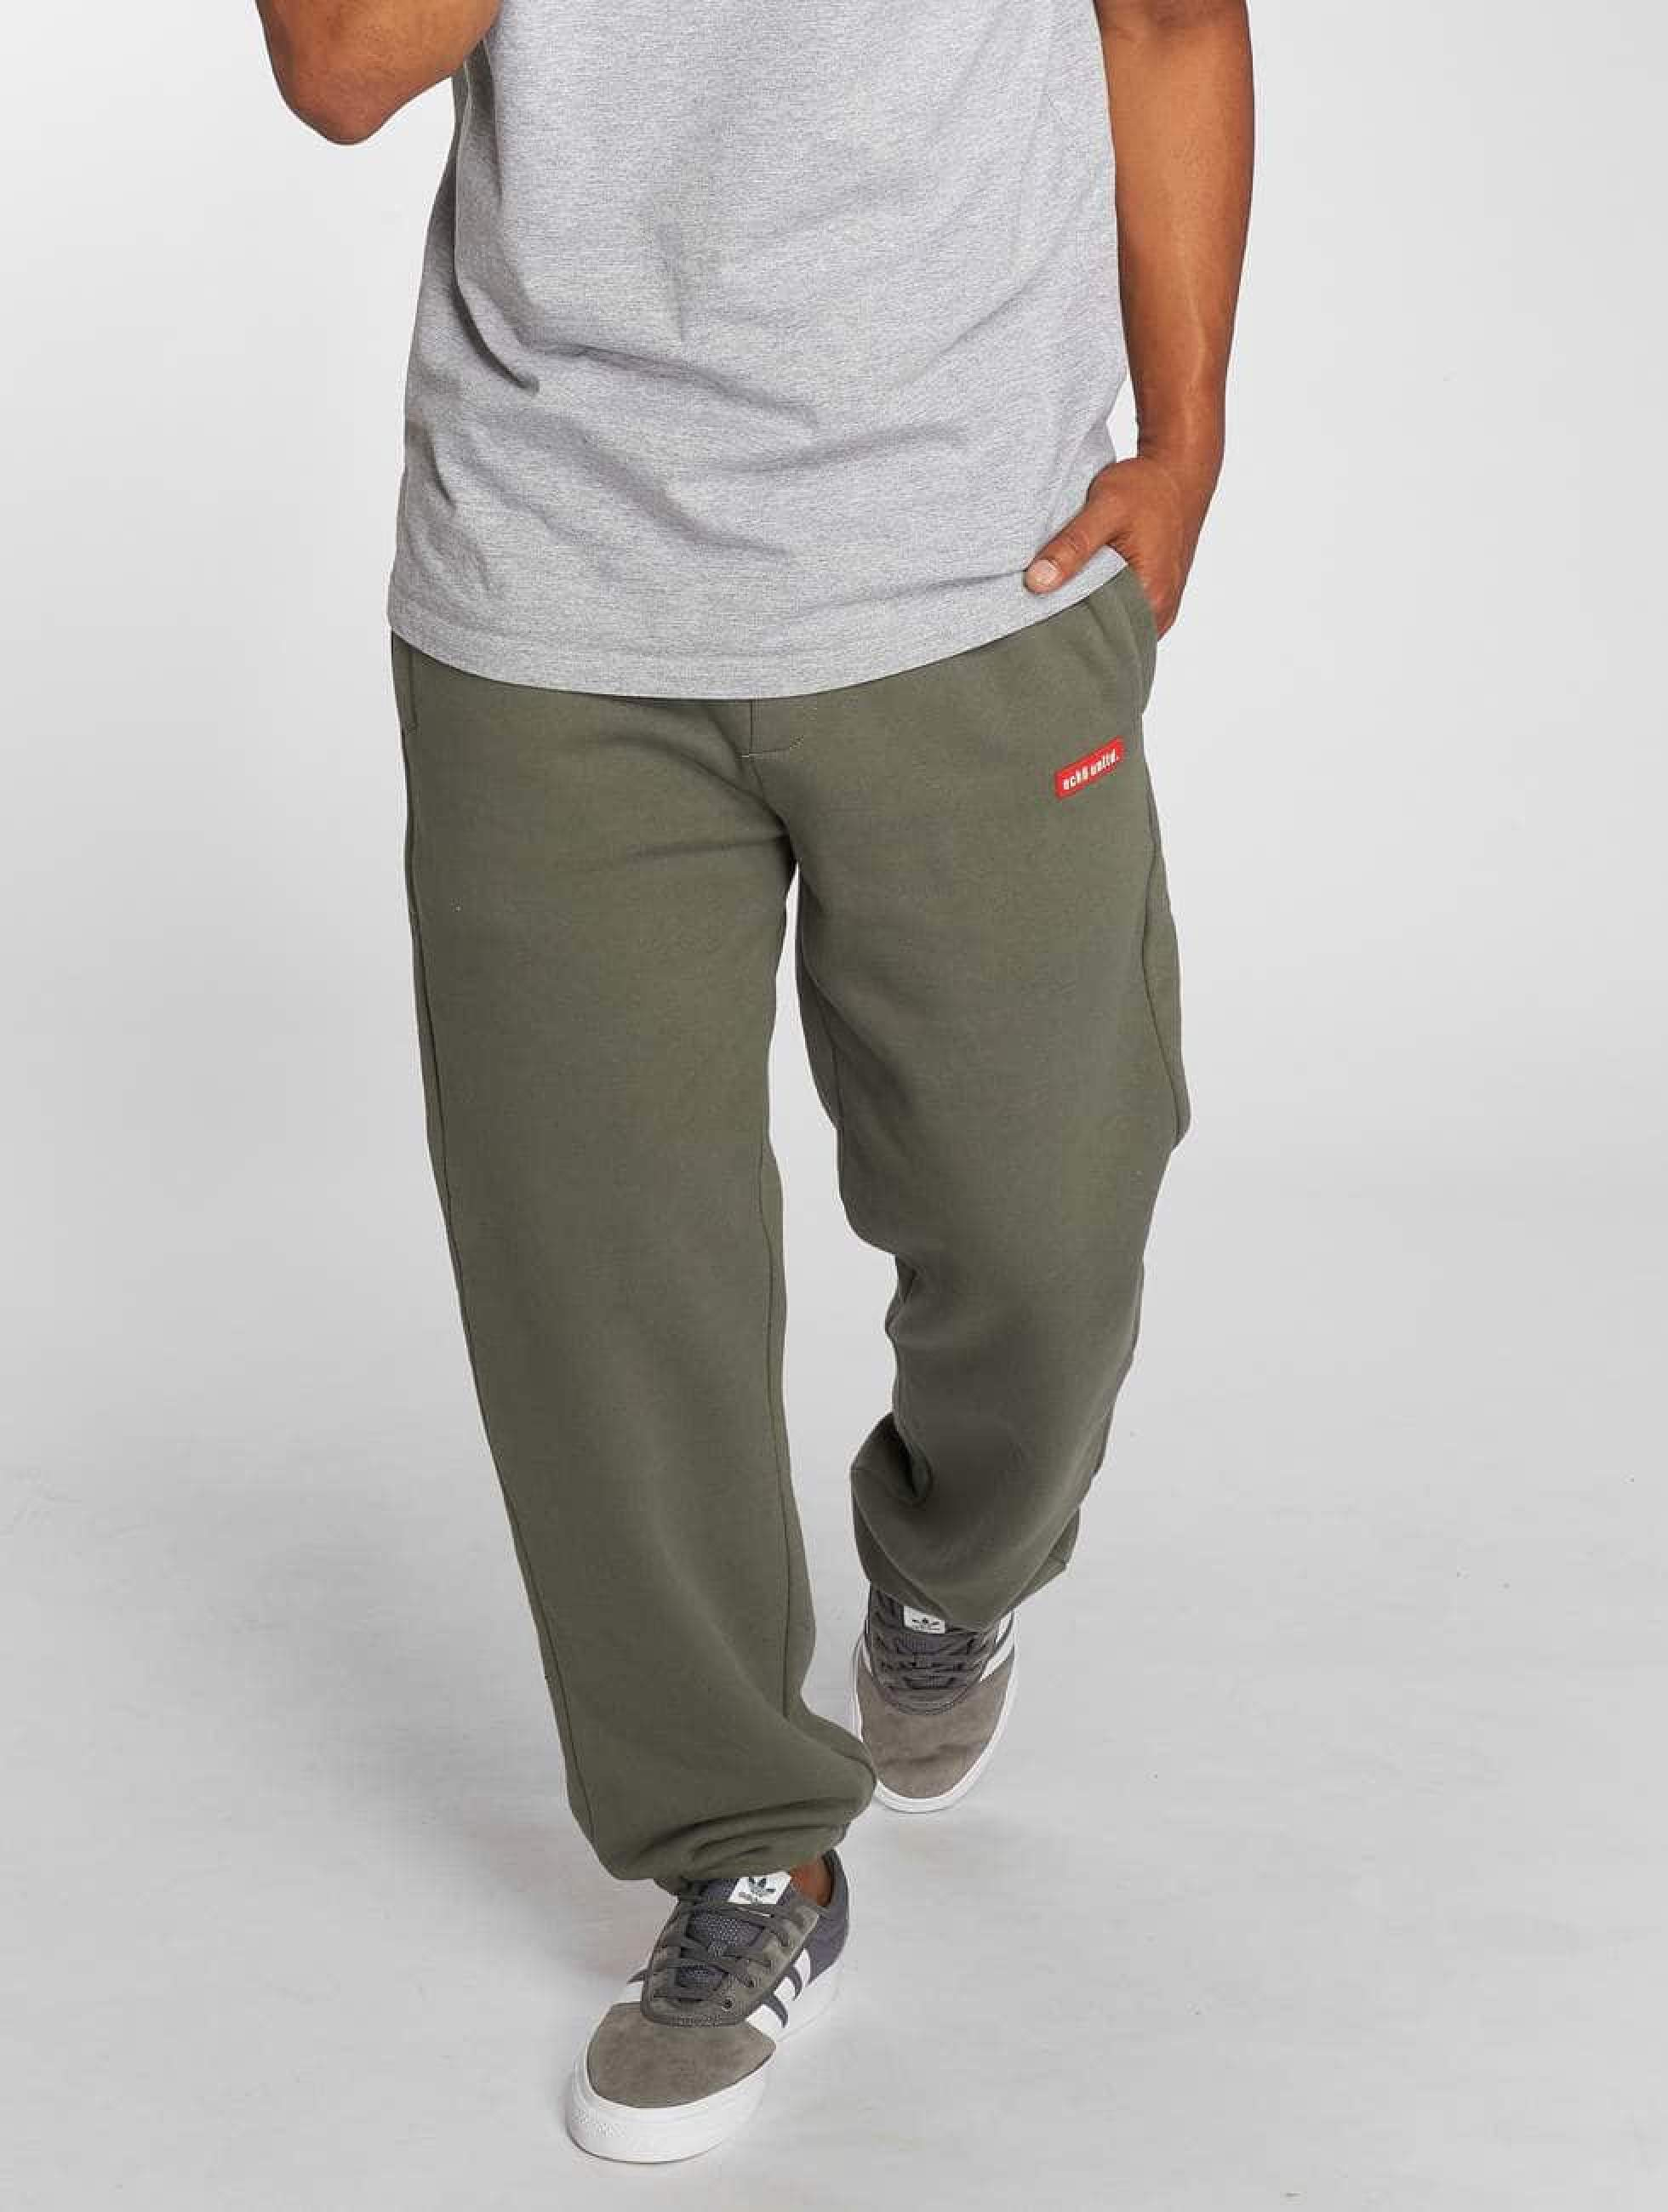 Ecko Unltd. / Sweat Pant BananaBeach in olive XL